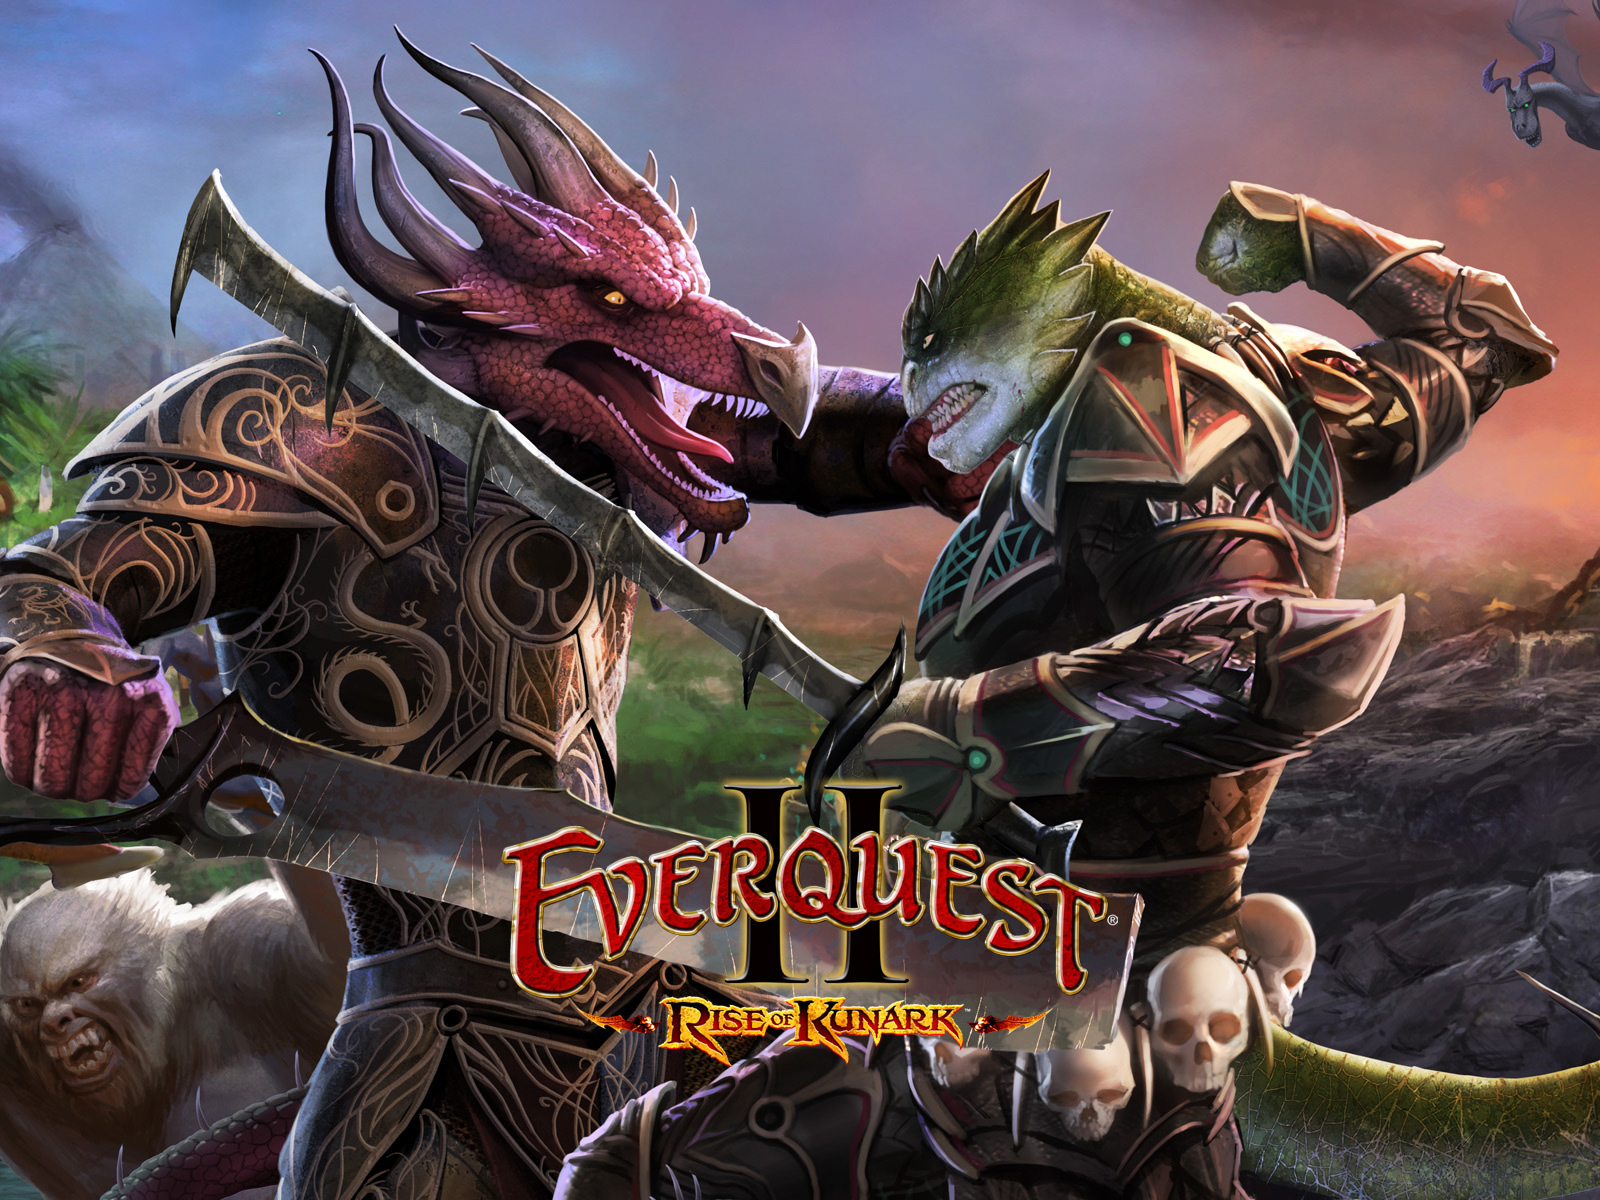 Pictures EverQuest EverQuest II: Rise of Kunark vdeo game Games